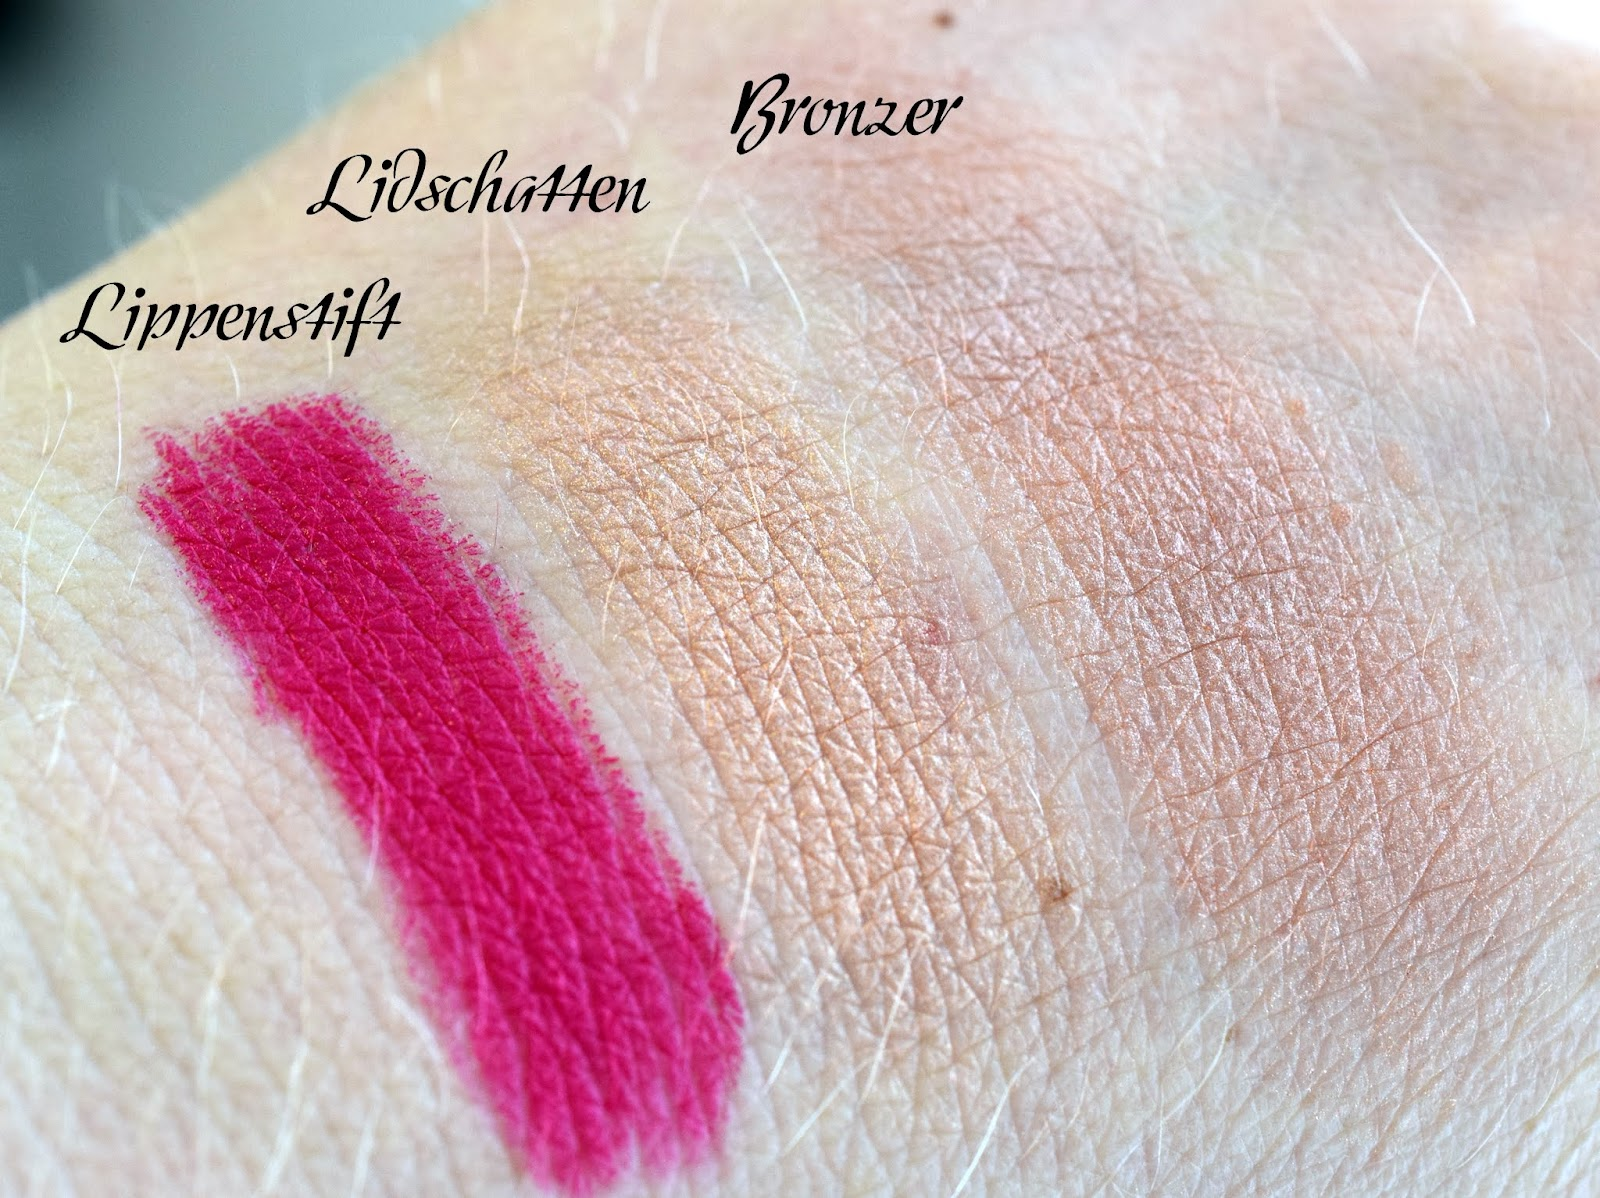 Catrice Lumination LE: Swatches